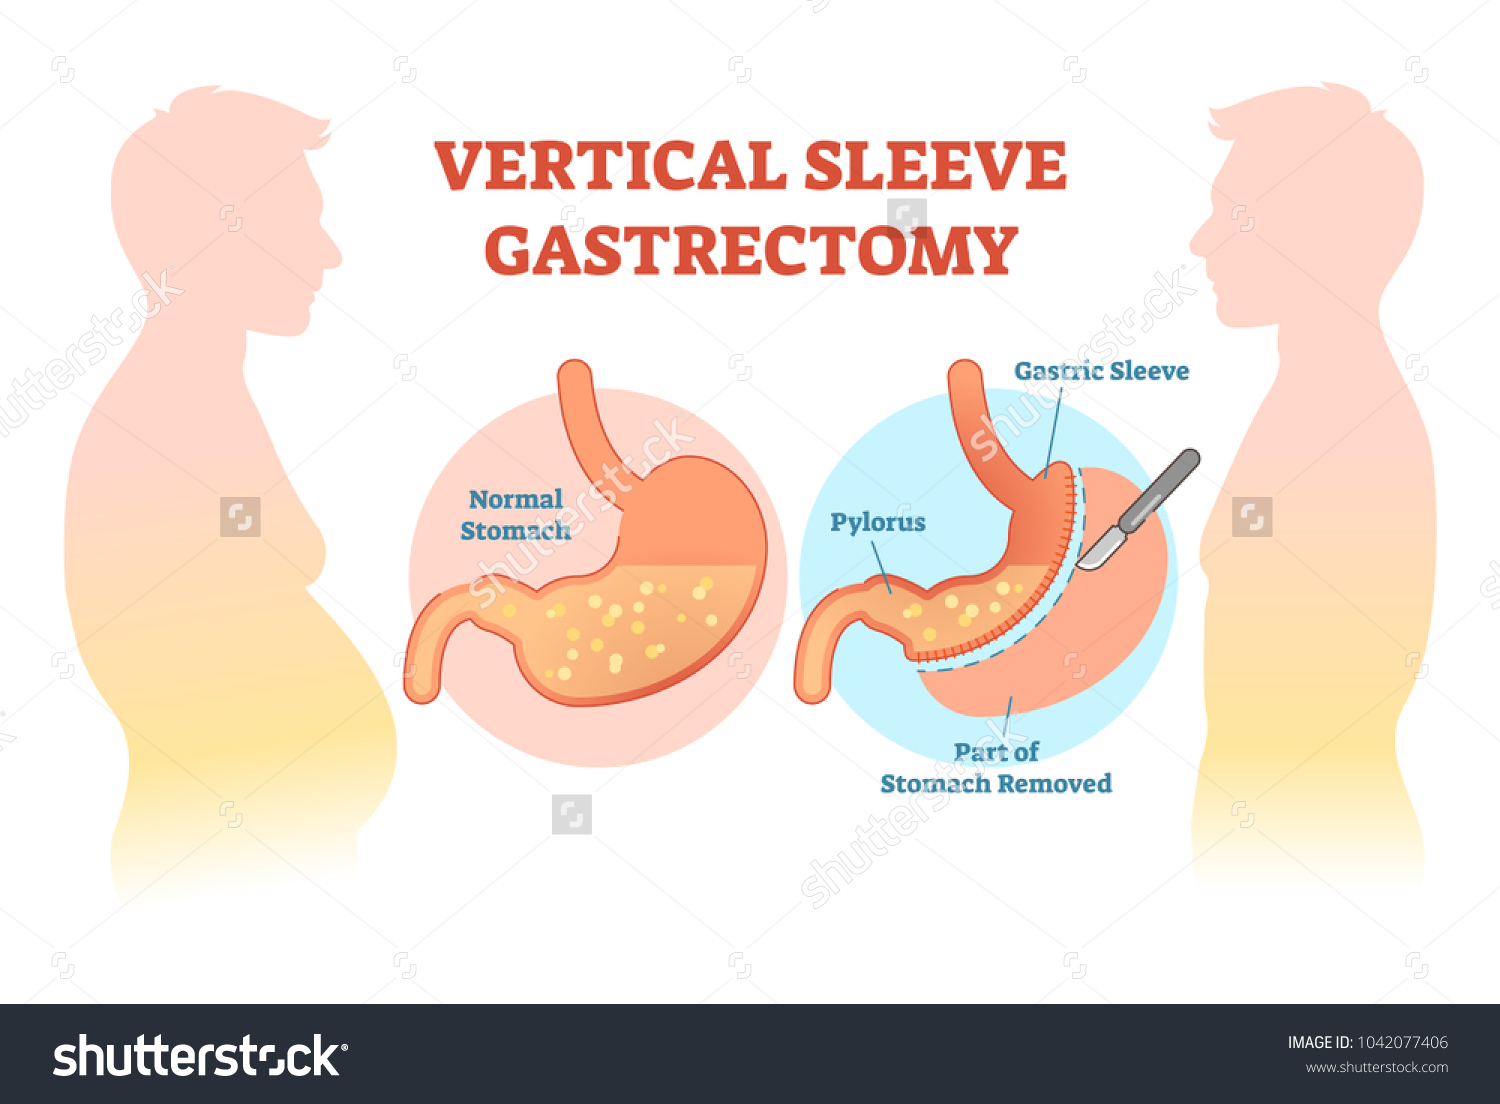 Vertical sleeve gastrectomy medical vector illustration stock vector vertical sleeve gastrectomy medical vector illustration diagram with stomach surgical cut anatomical diagram ccuart Gallery